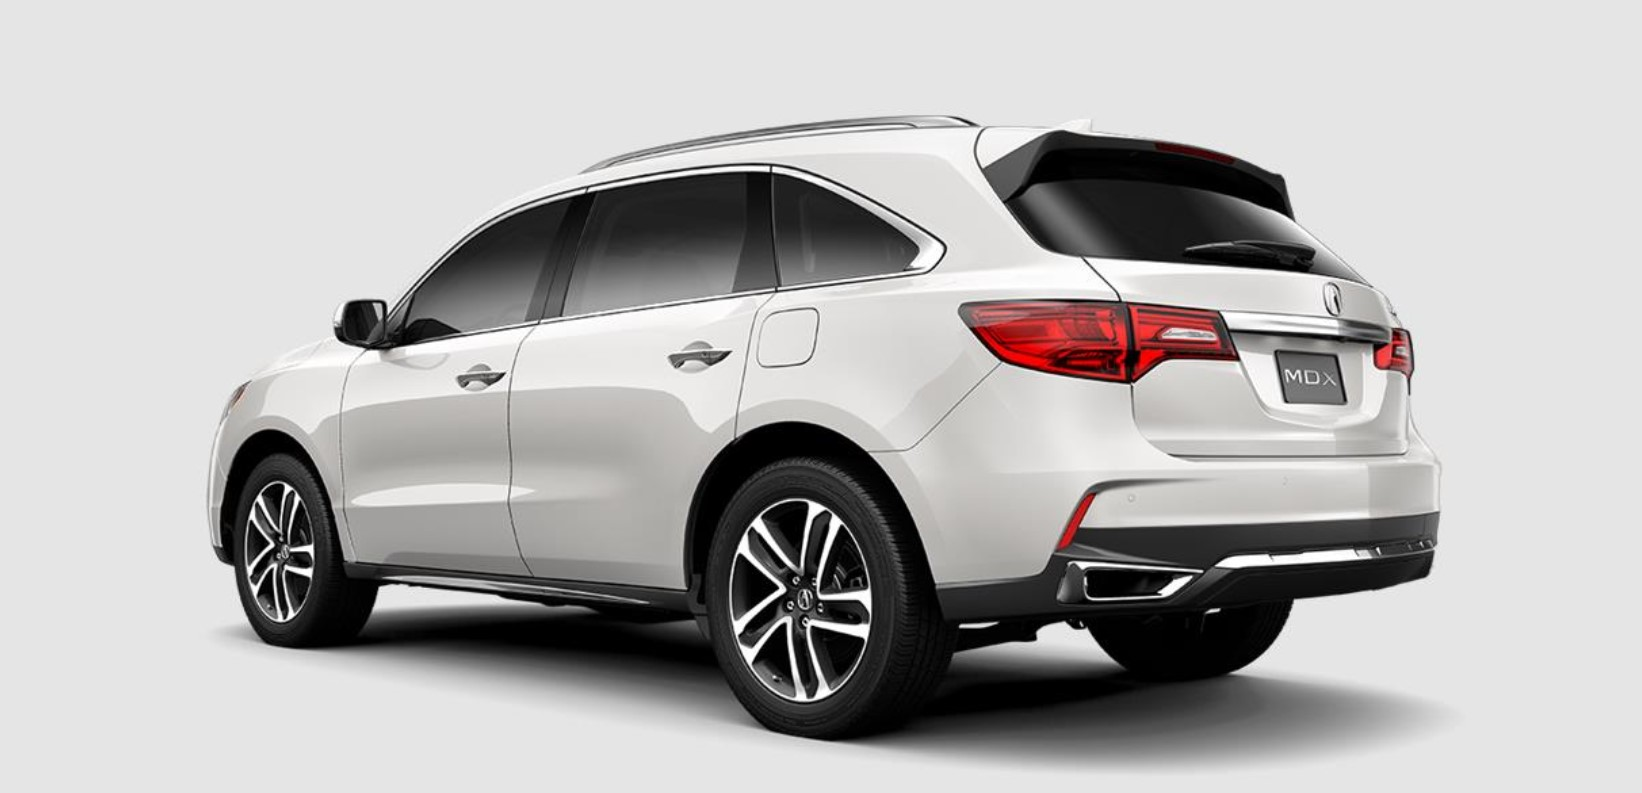 2018 Acura MDX with Advance Package Exterior Rear White